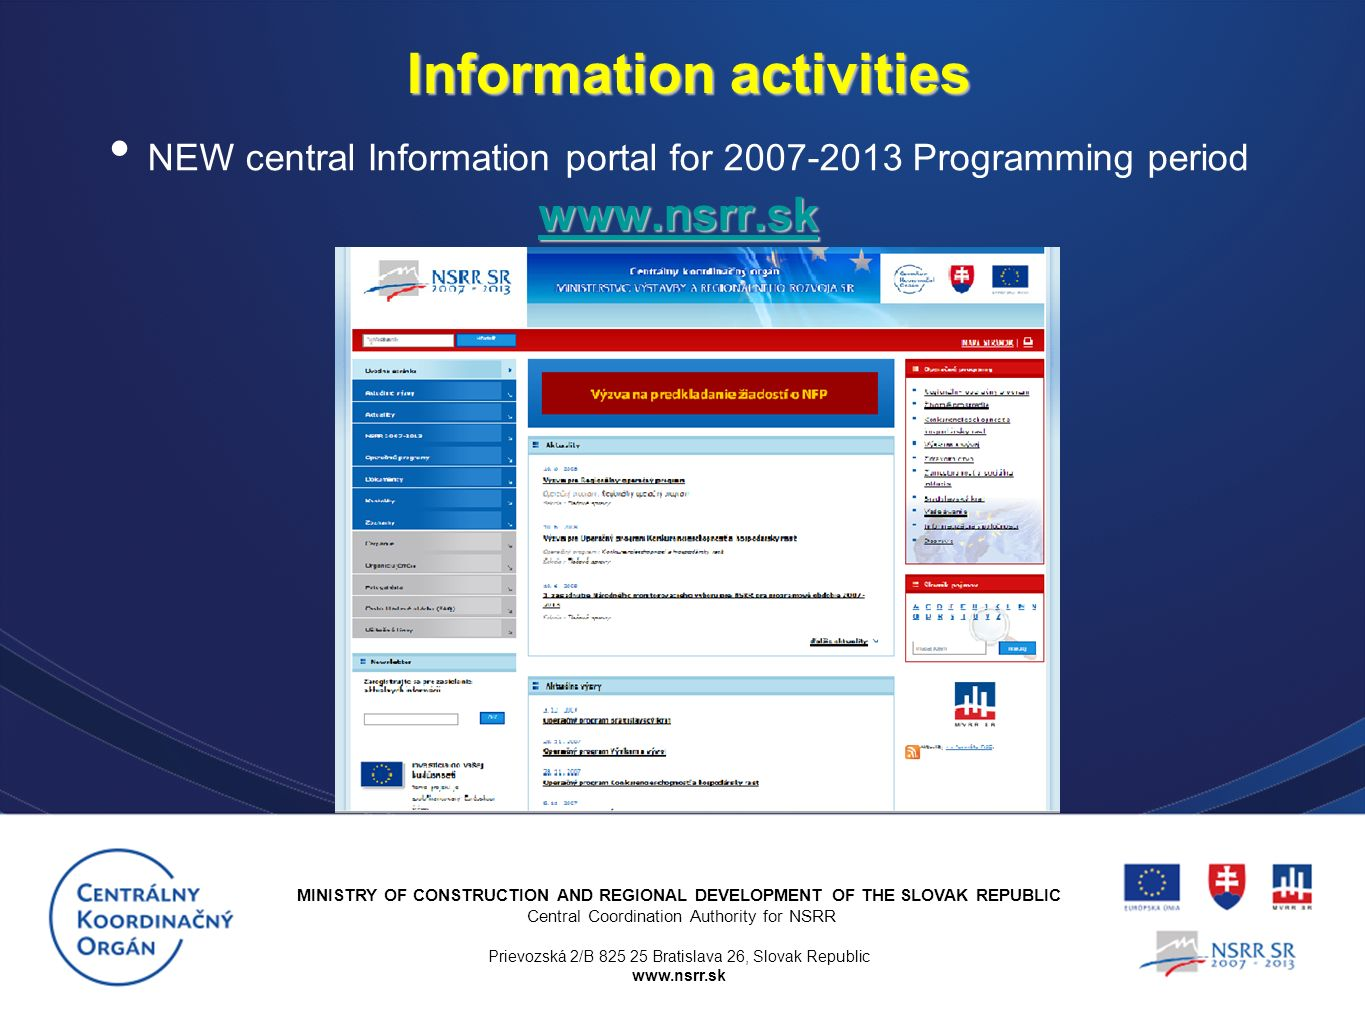 MINISTRY OF CONSTRUCTION AND REGIONAL DEVELOPMENT OF THE SLOVAK REPUBLIC Central Coordination Authority for NSRR Prievozská 2/B Bratislava 26, Slovak Republic   Information activities     NEW central Information portal for Programming period